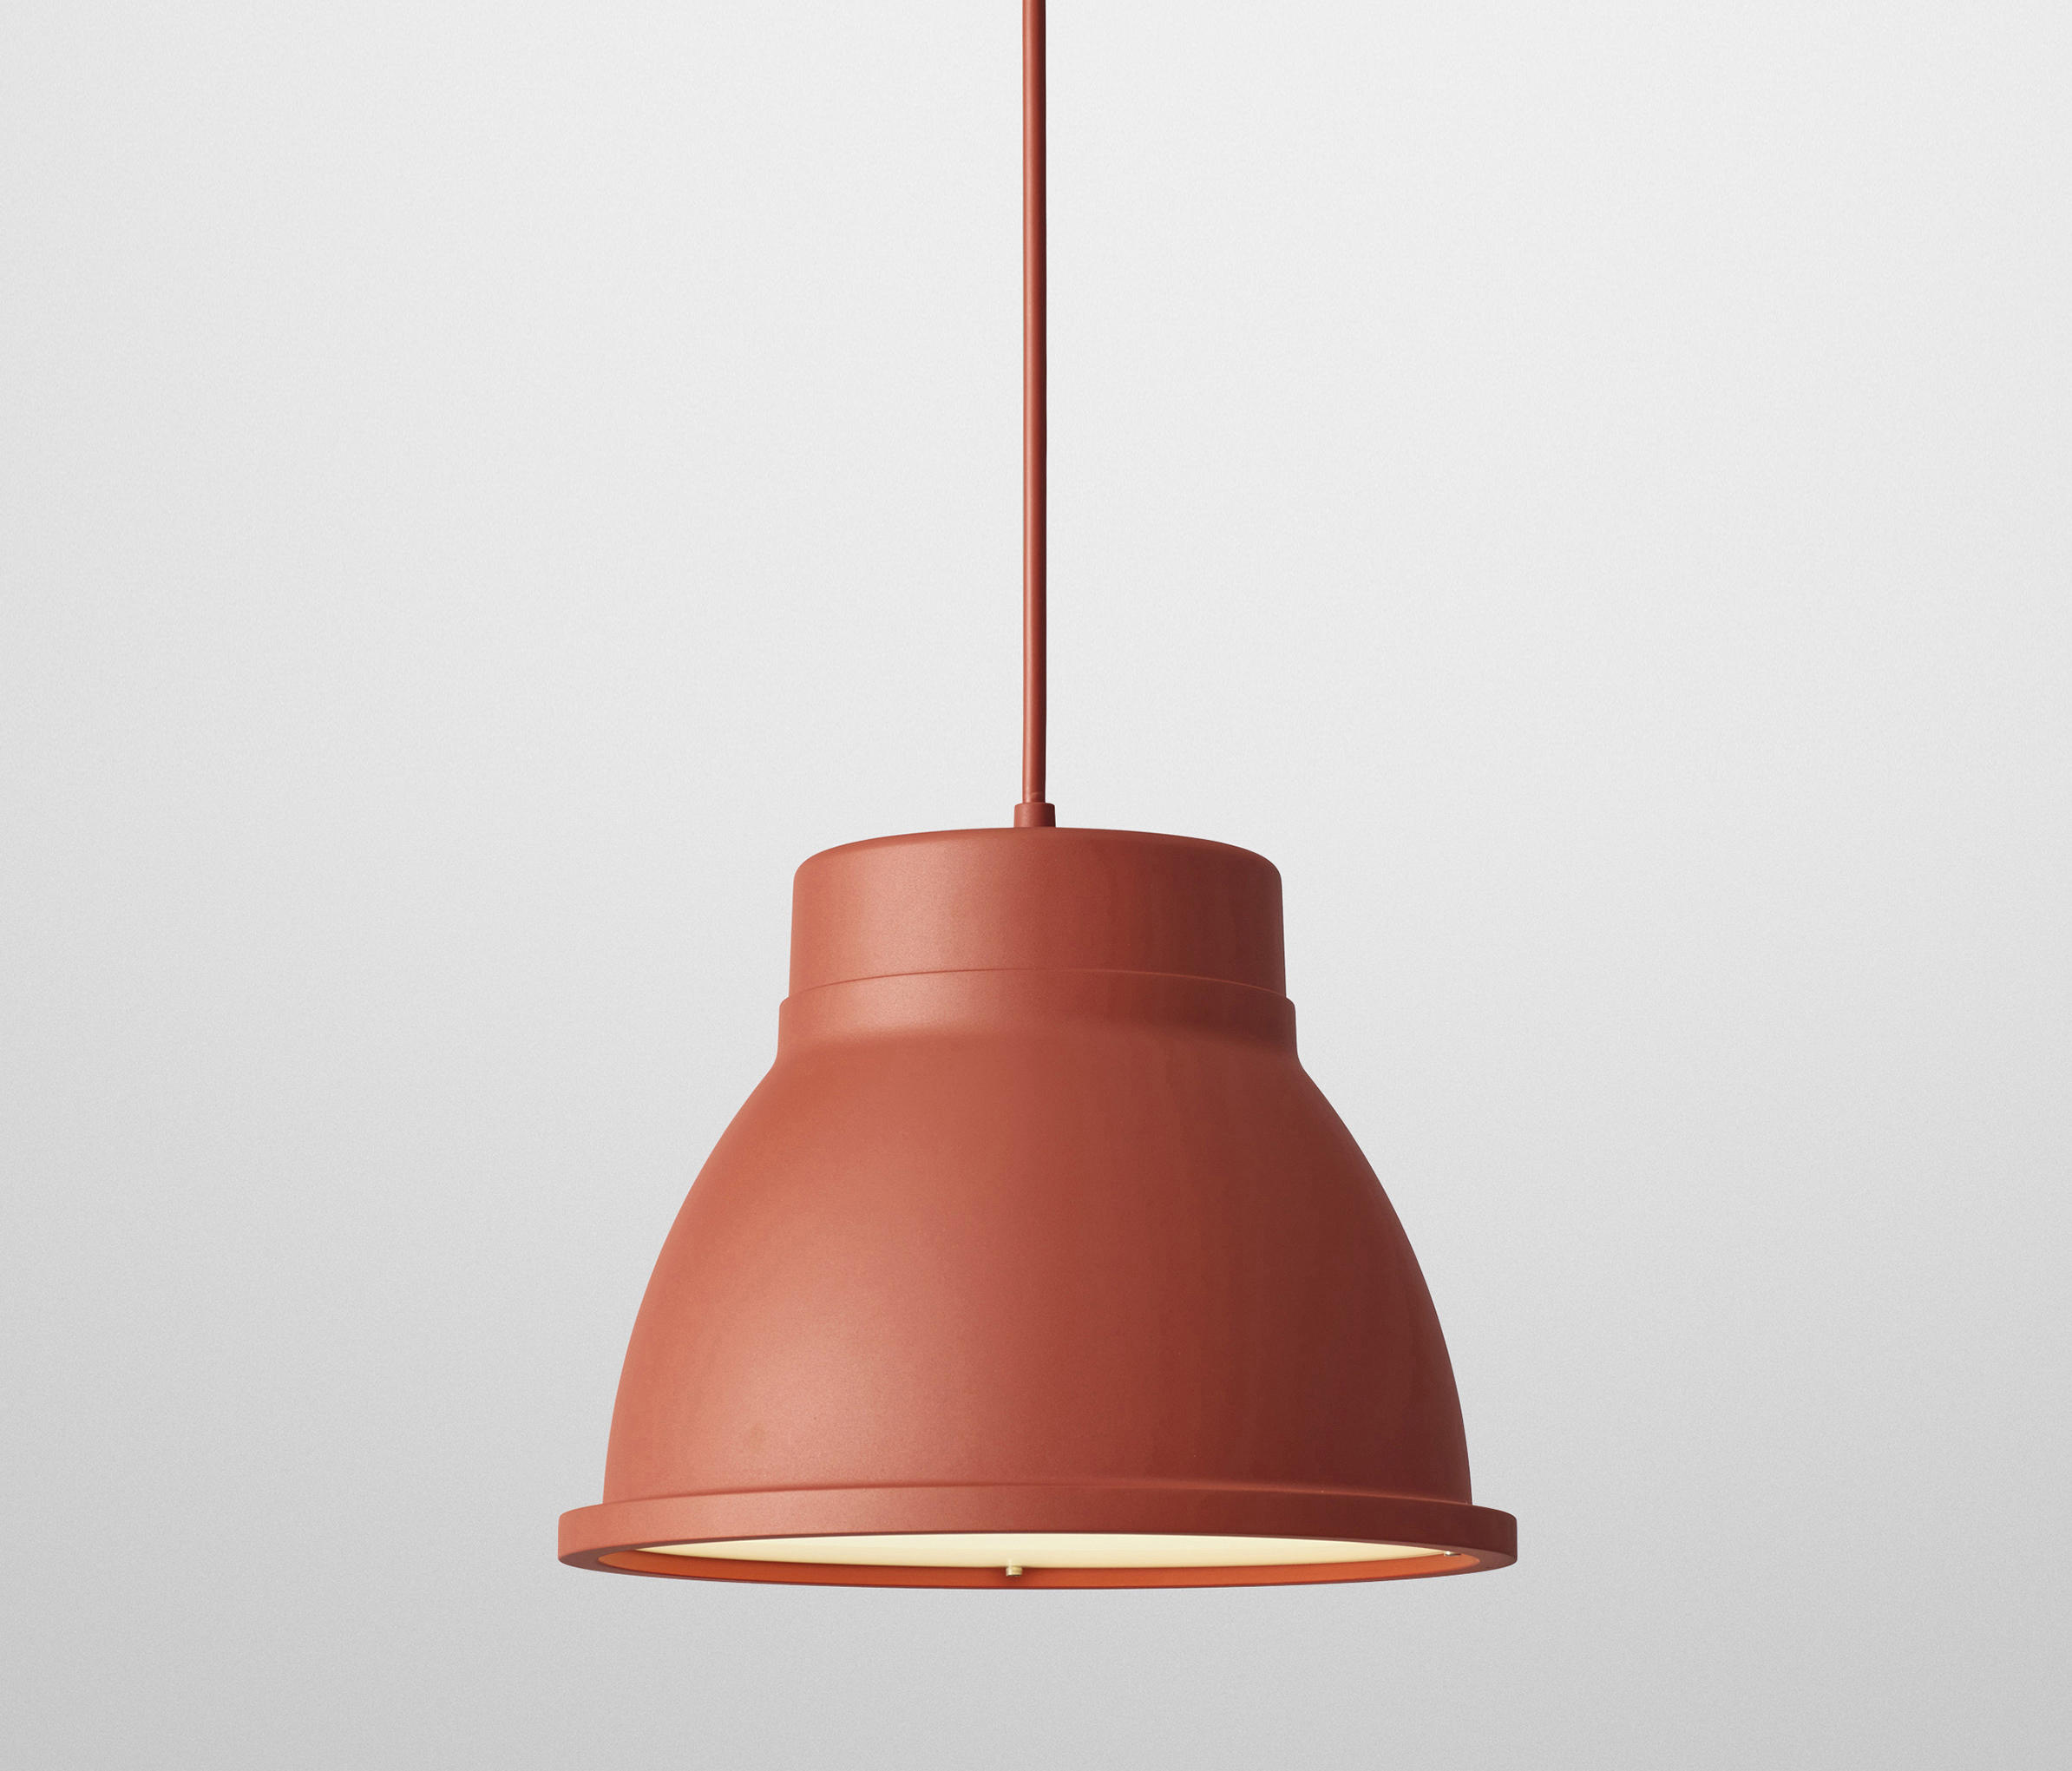 studio pendant lamp general lighting from muuto architonic. Black Bedroom Furniture Sets. Home Design Ideas